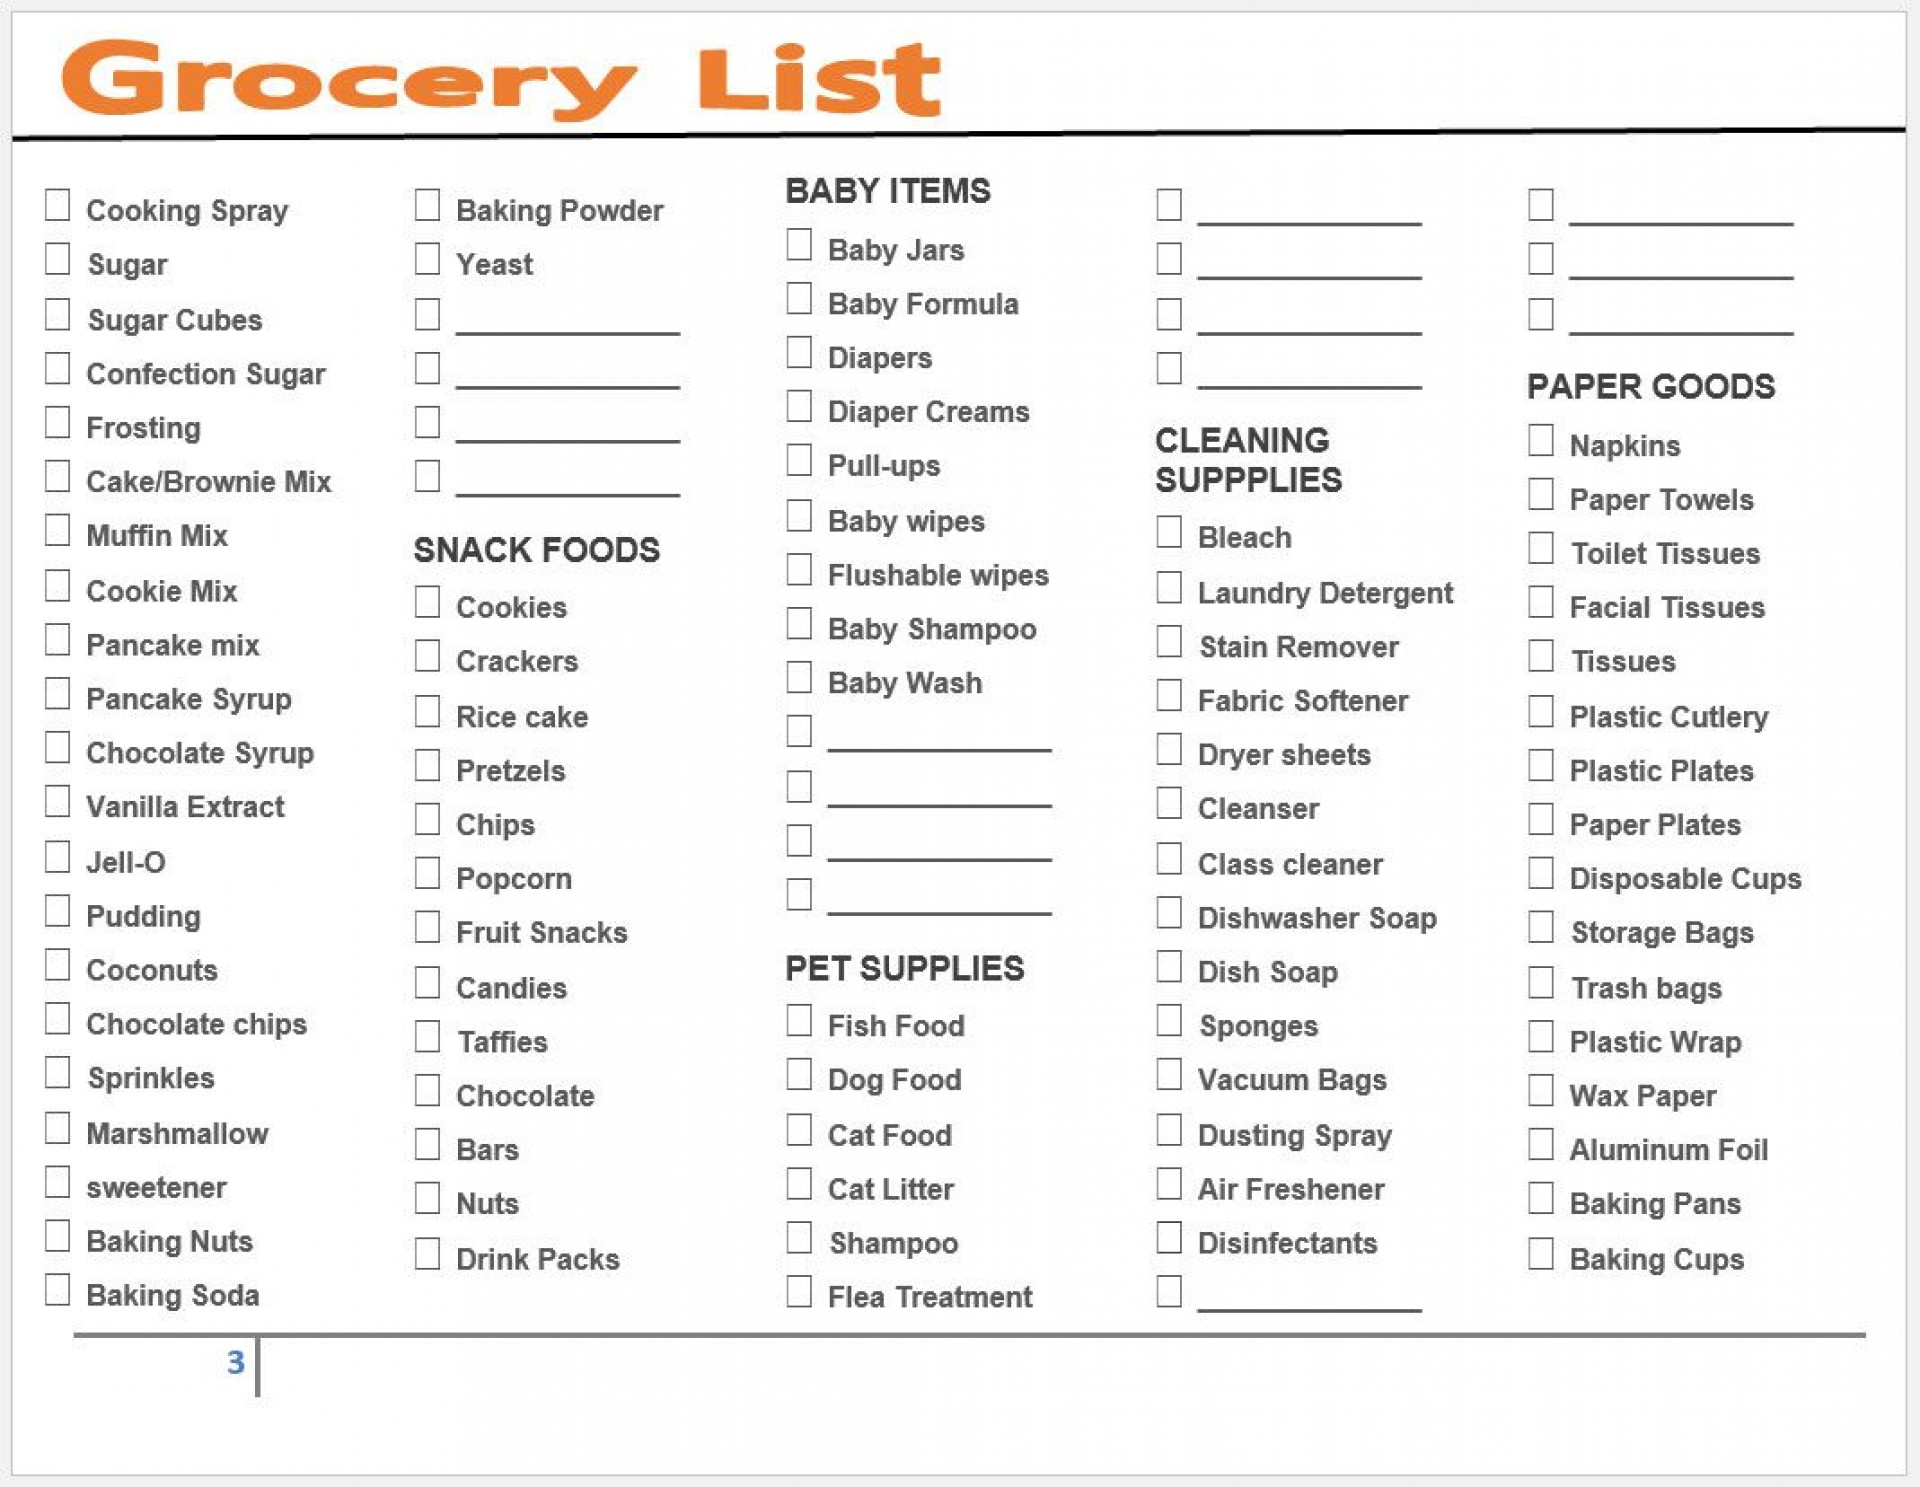 005 Striking Grocery List Template Excel Free Download Picture 1920